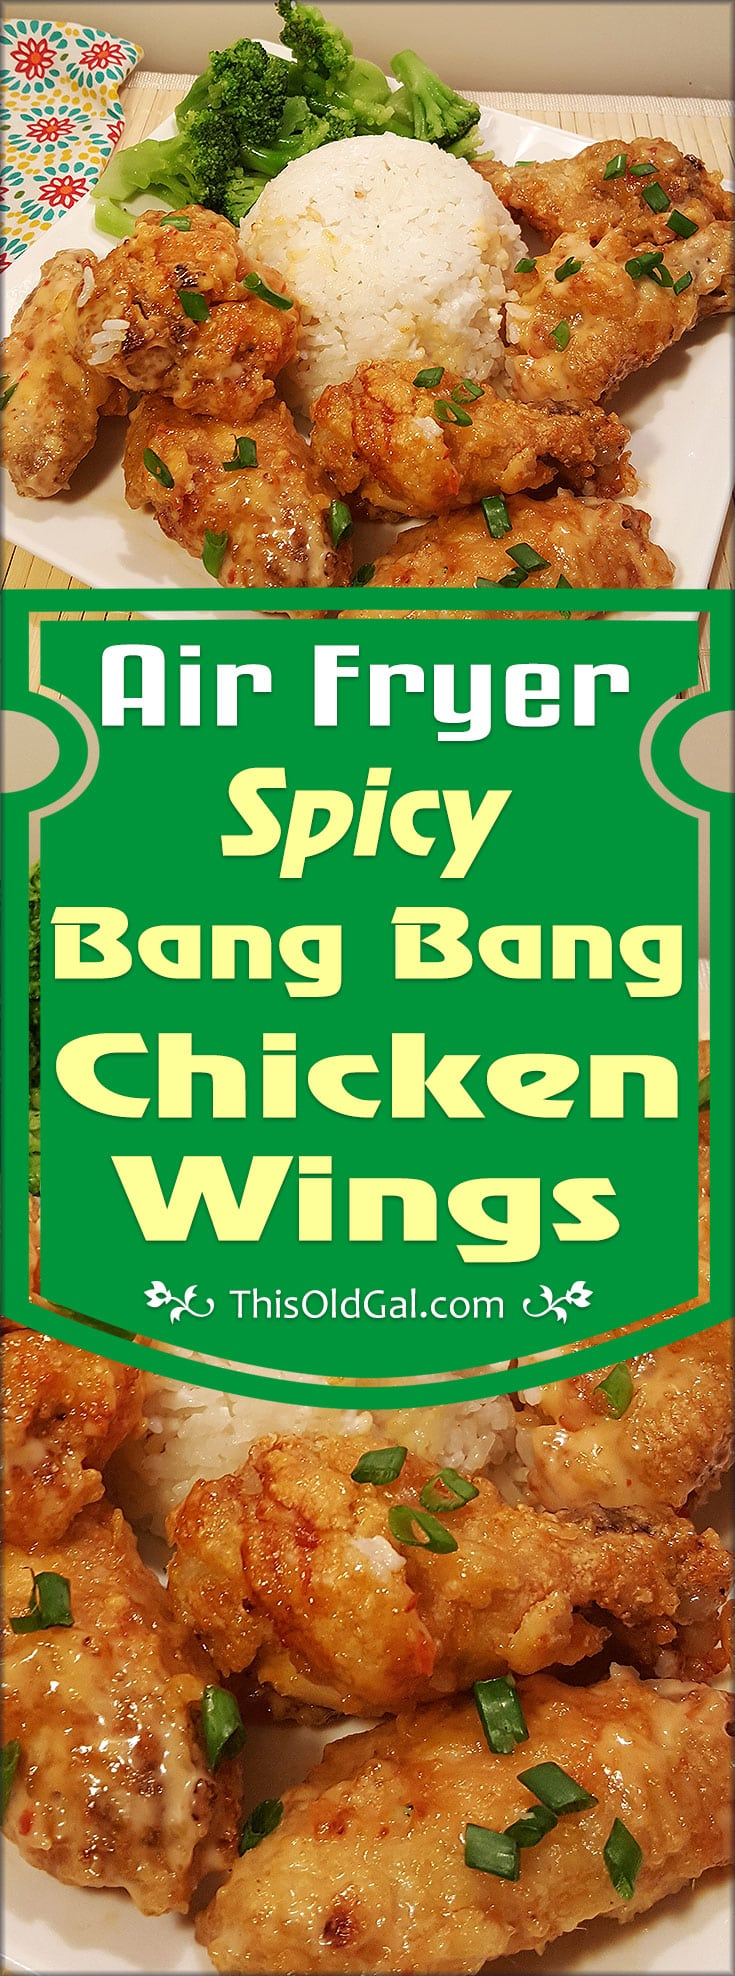 Air Fryer Spicy Bang Bang Chicken Wings